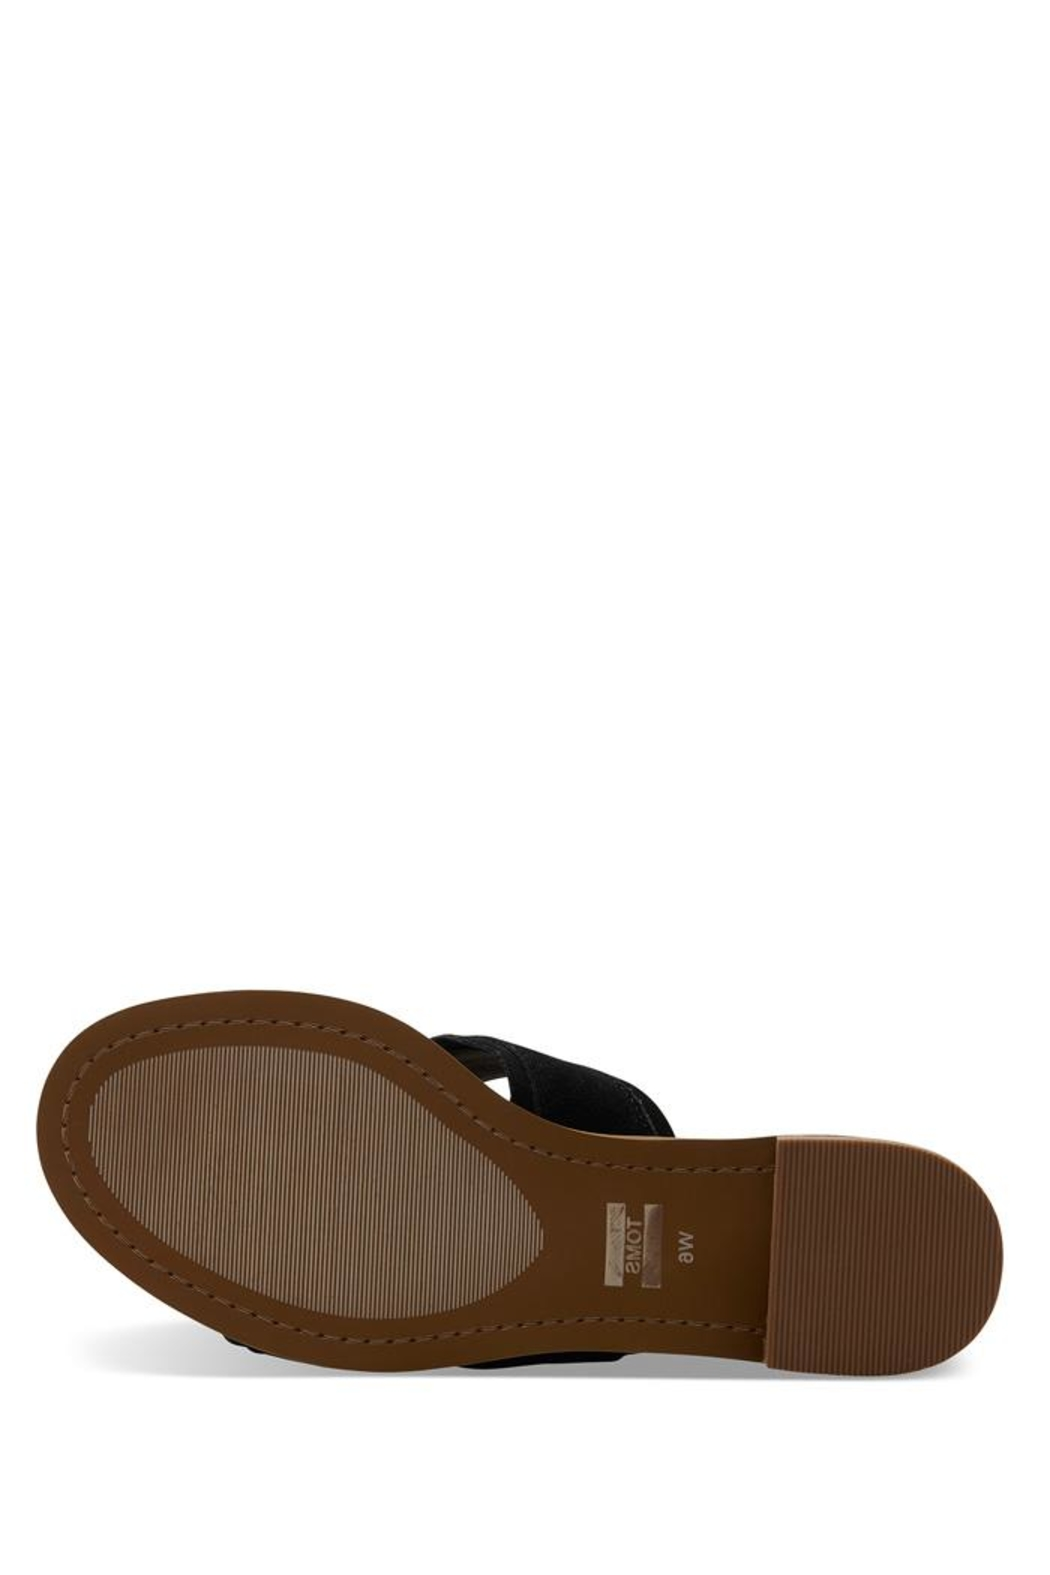 TOMS Mariposa Suede Sandals - Side Cropped Image